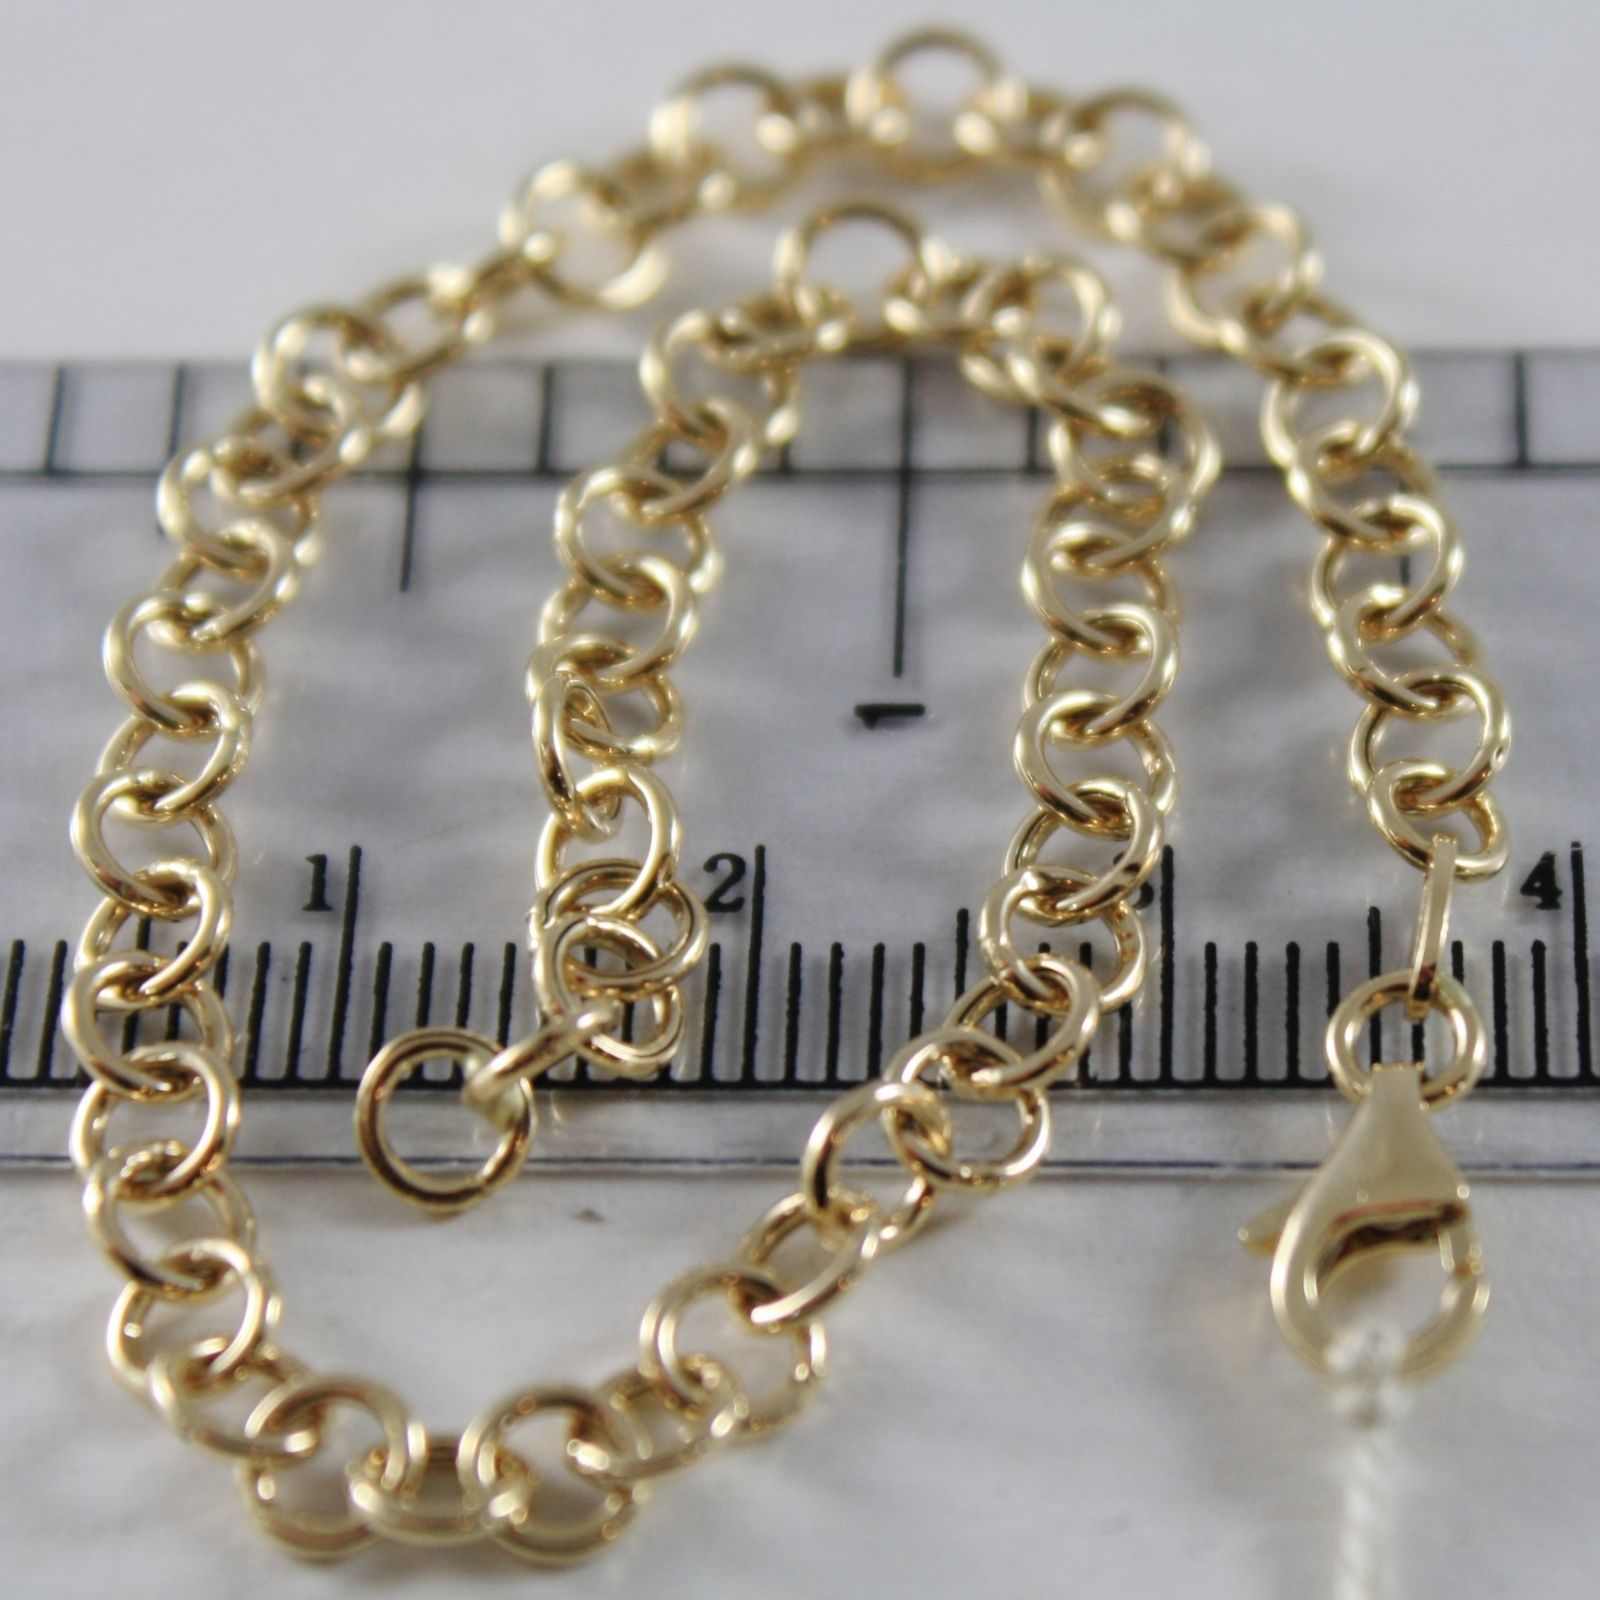 SOLID 18K YELLOW GOLD BRACELET WITH ROUND CIRCLE ROLO MESH, 4 MM MADE IN ITALY